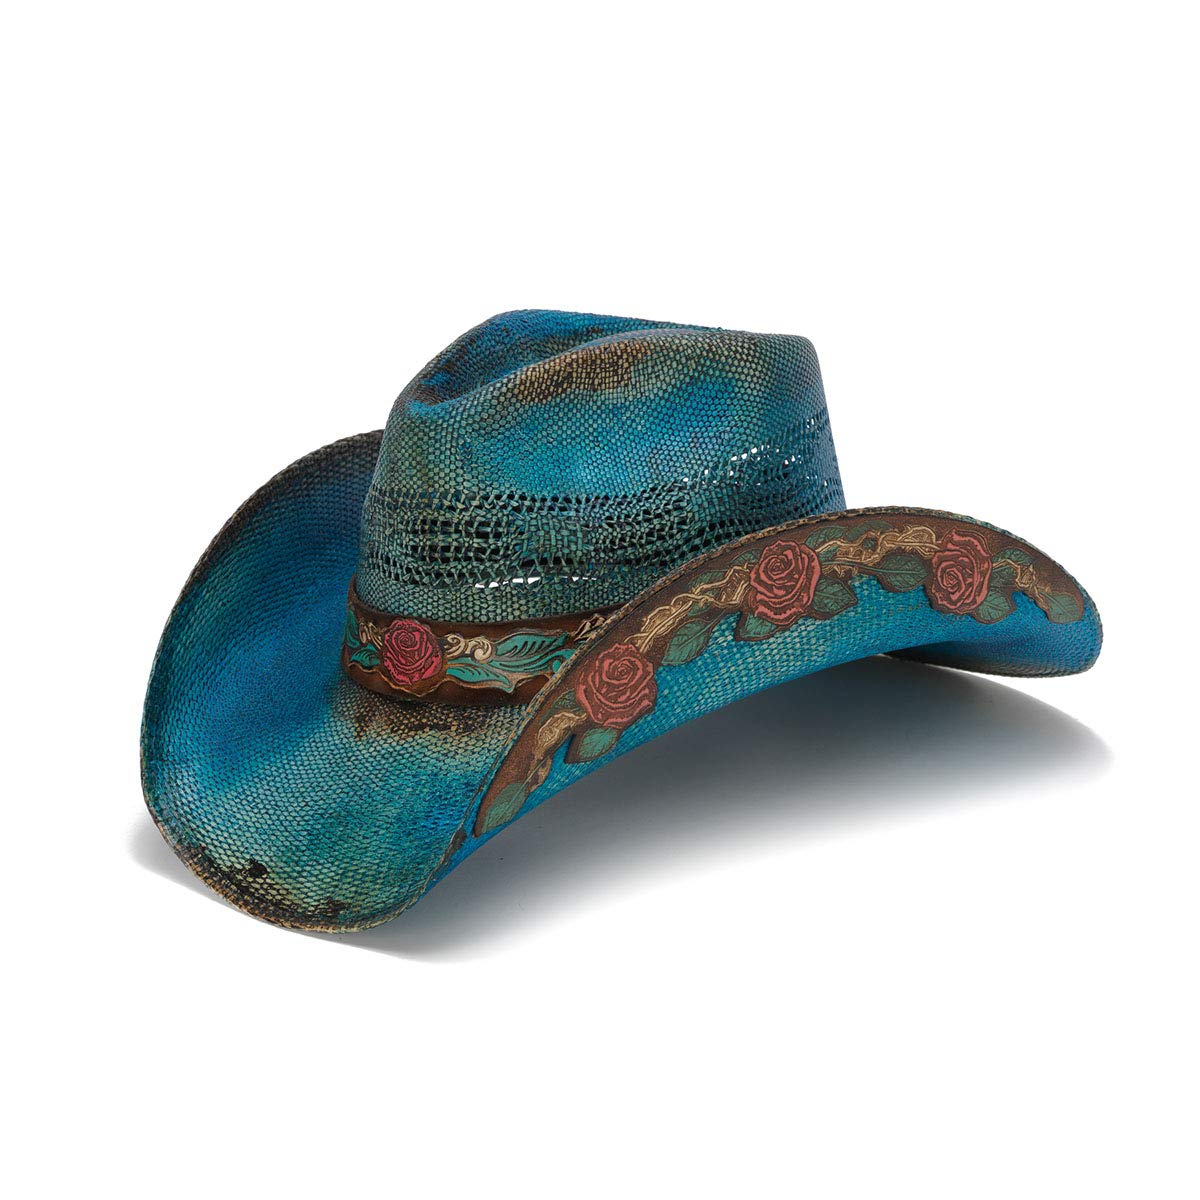 Stampede Hats Women's Love Story Rose Straw Western Hat S Blue